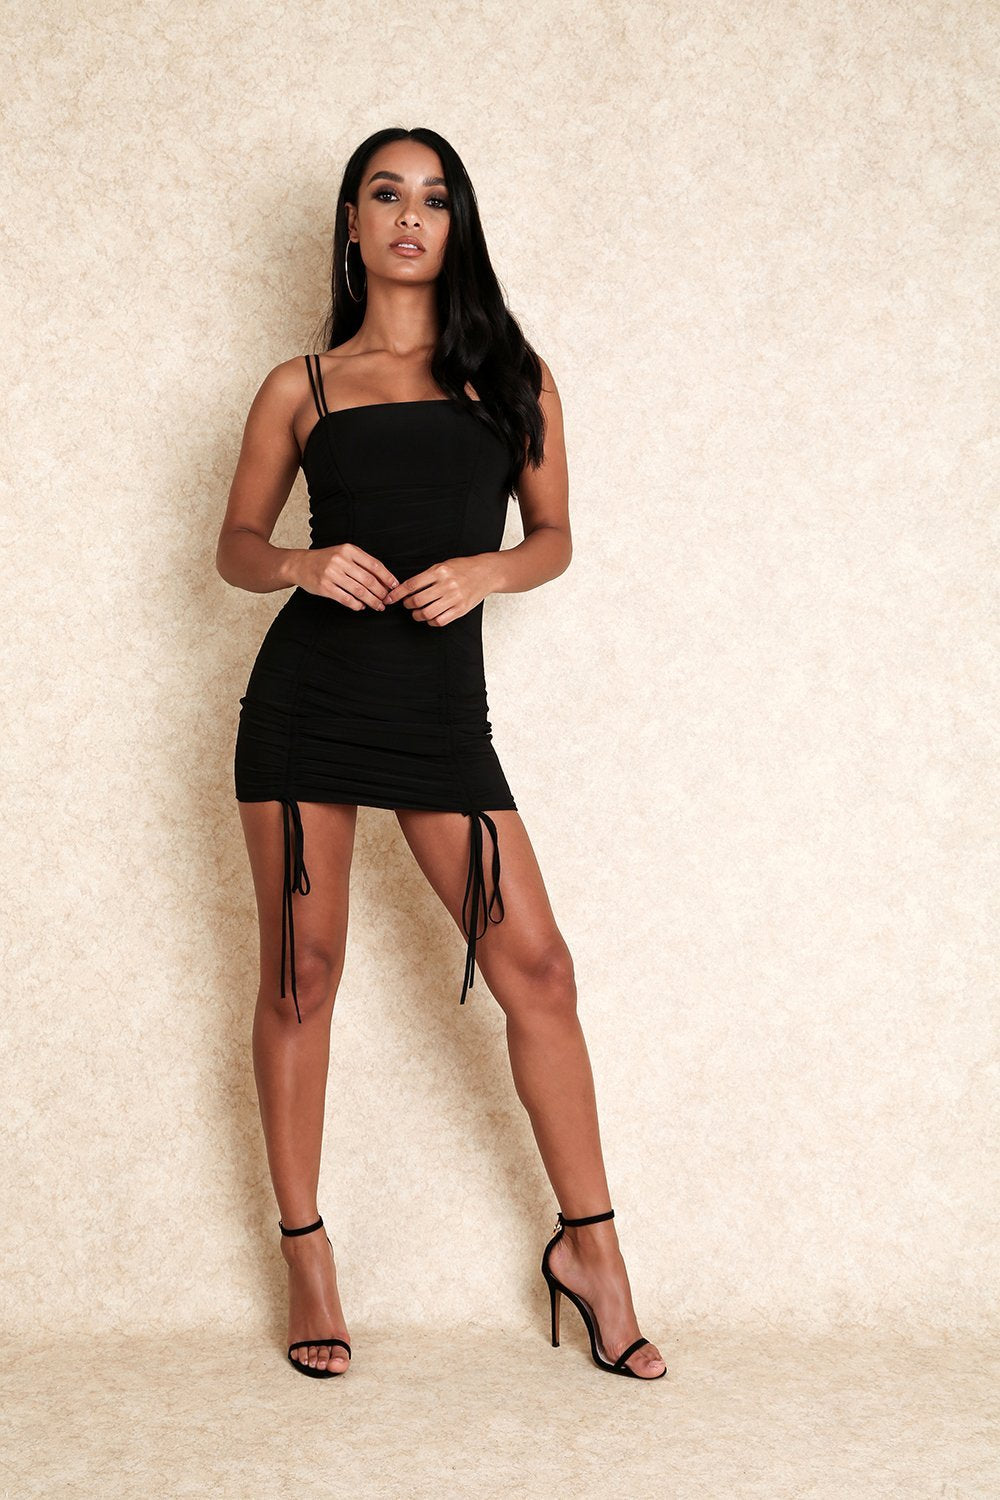 Wild Girl Adjustable Straps Mini Dress With Lace Up Detail - Klasha